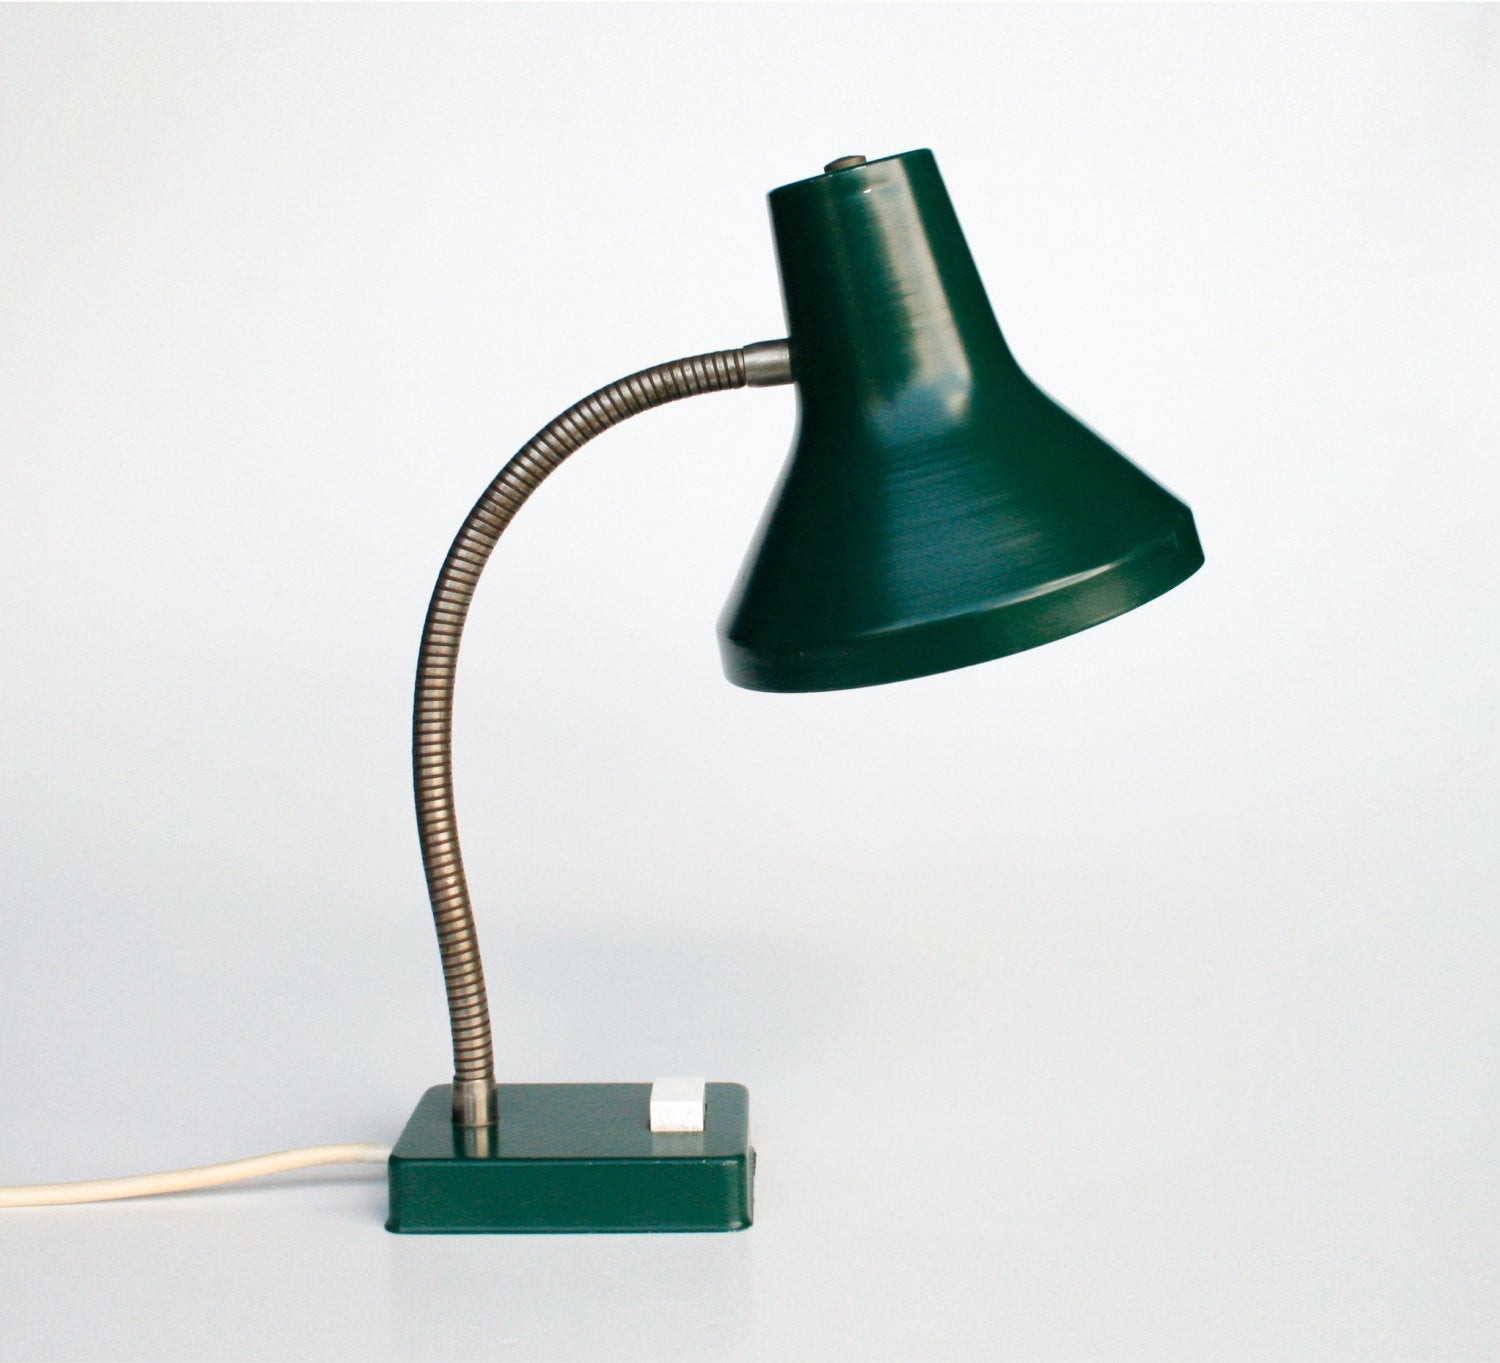 Best ideas about Vintage Desk Lamp . Save or Pin Vintage Gooseneck Table Lamp Desk Lamp by Now.